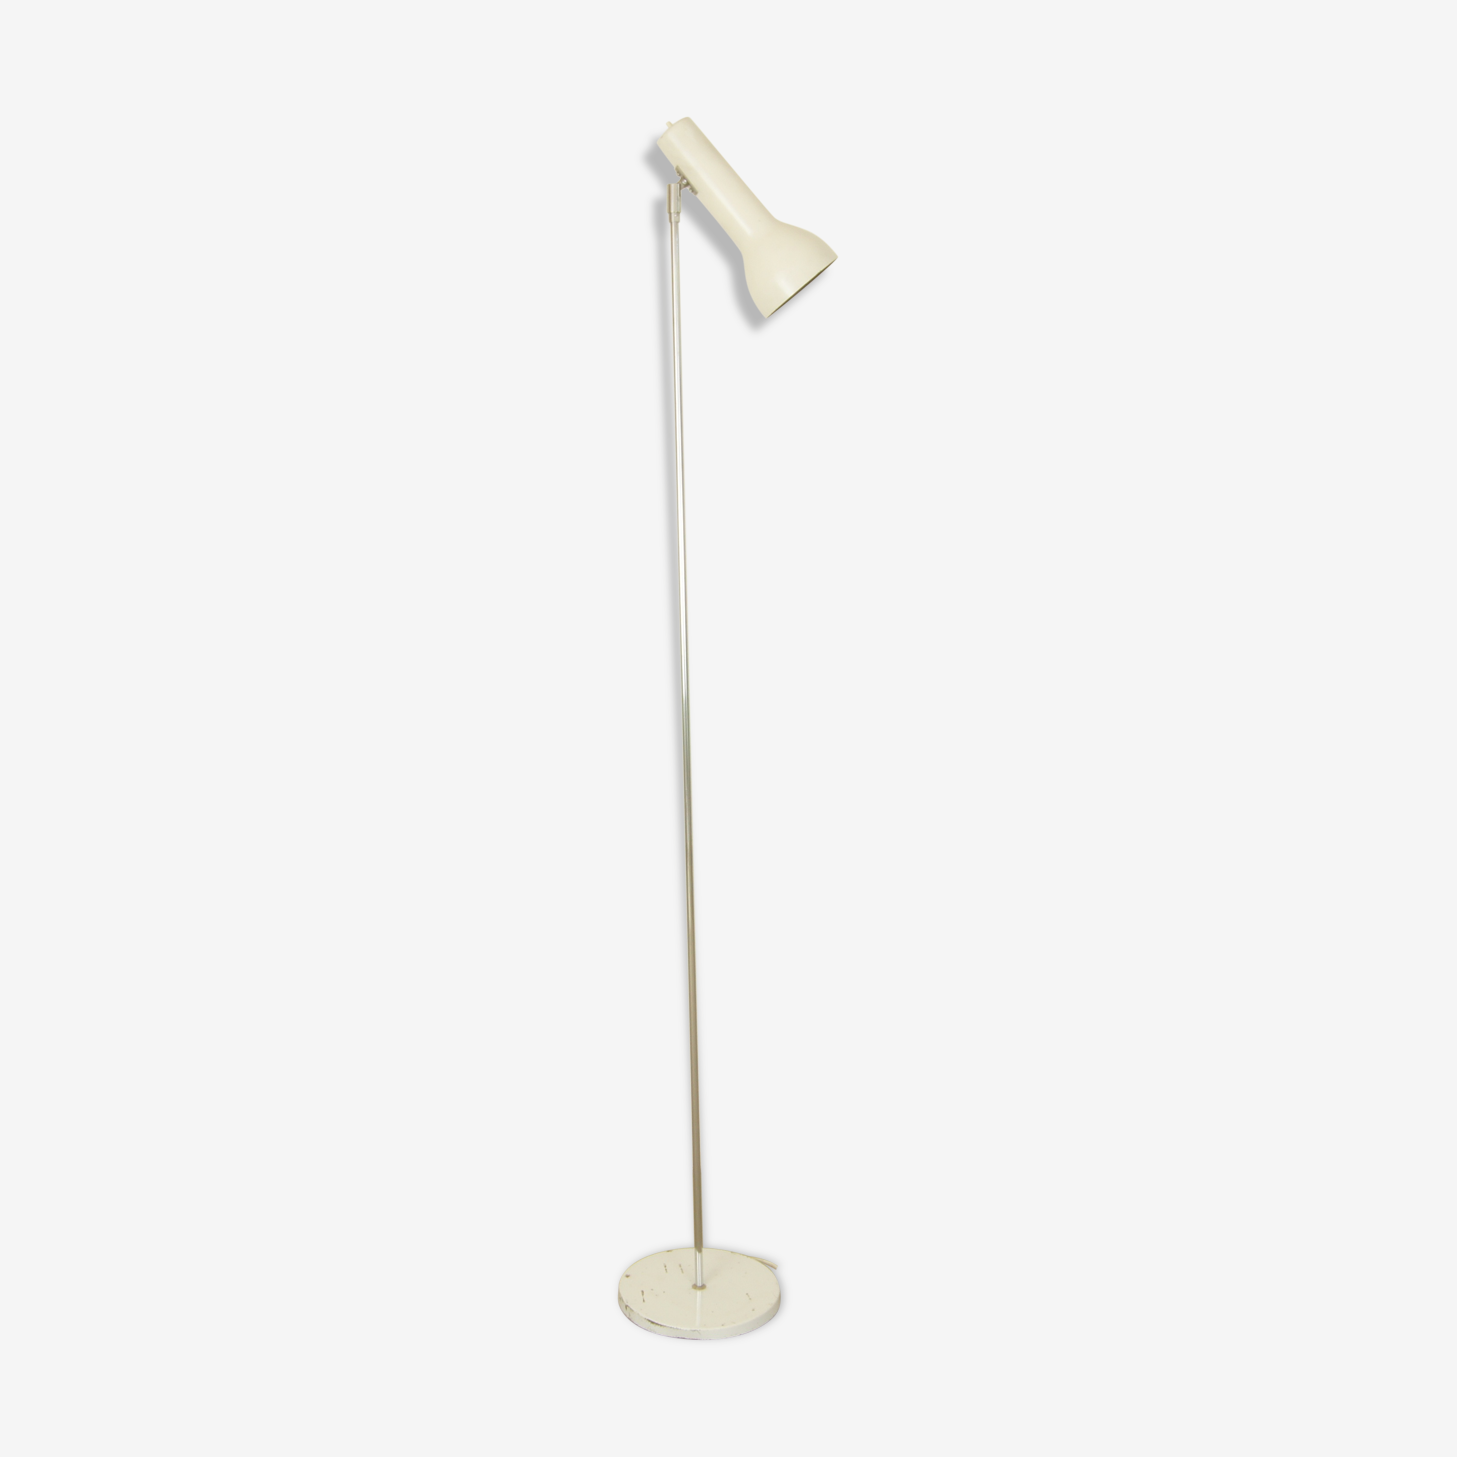 German Floor Lamp from OMI, 1970s